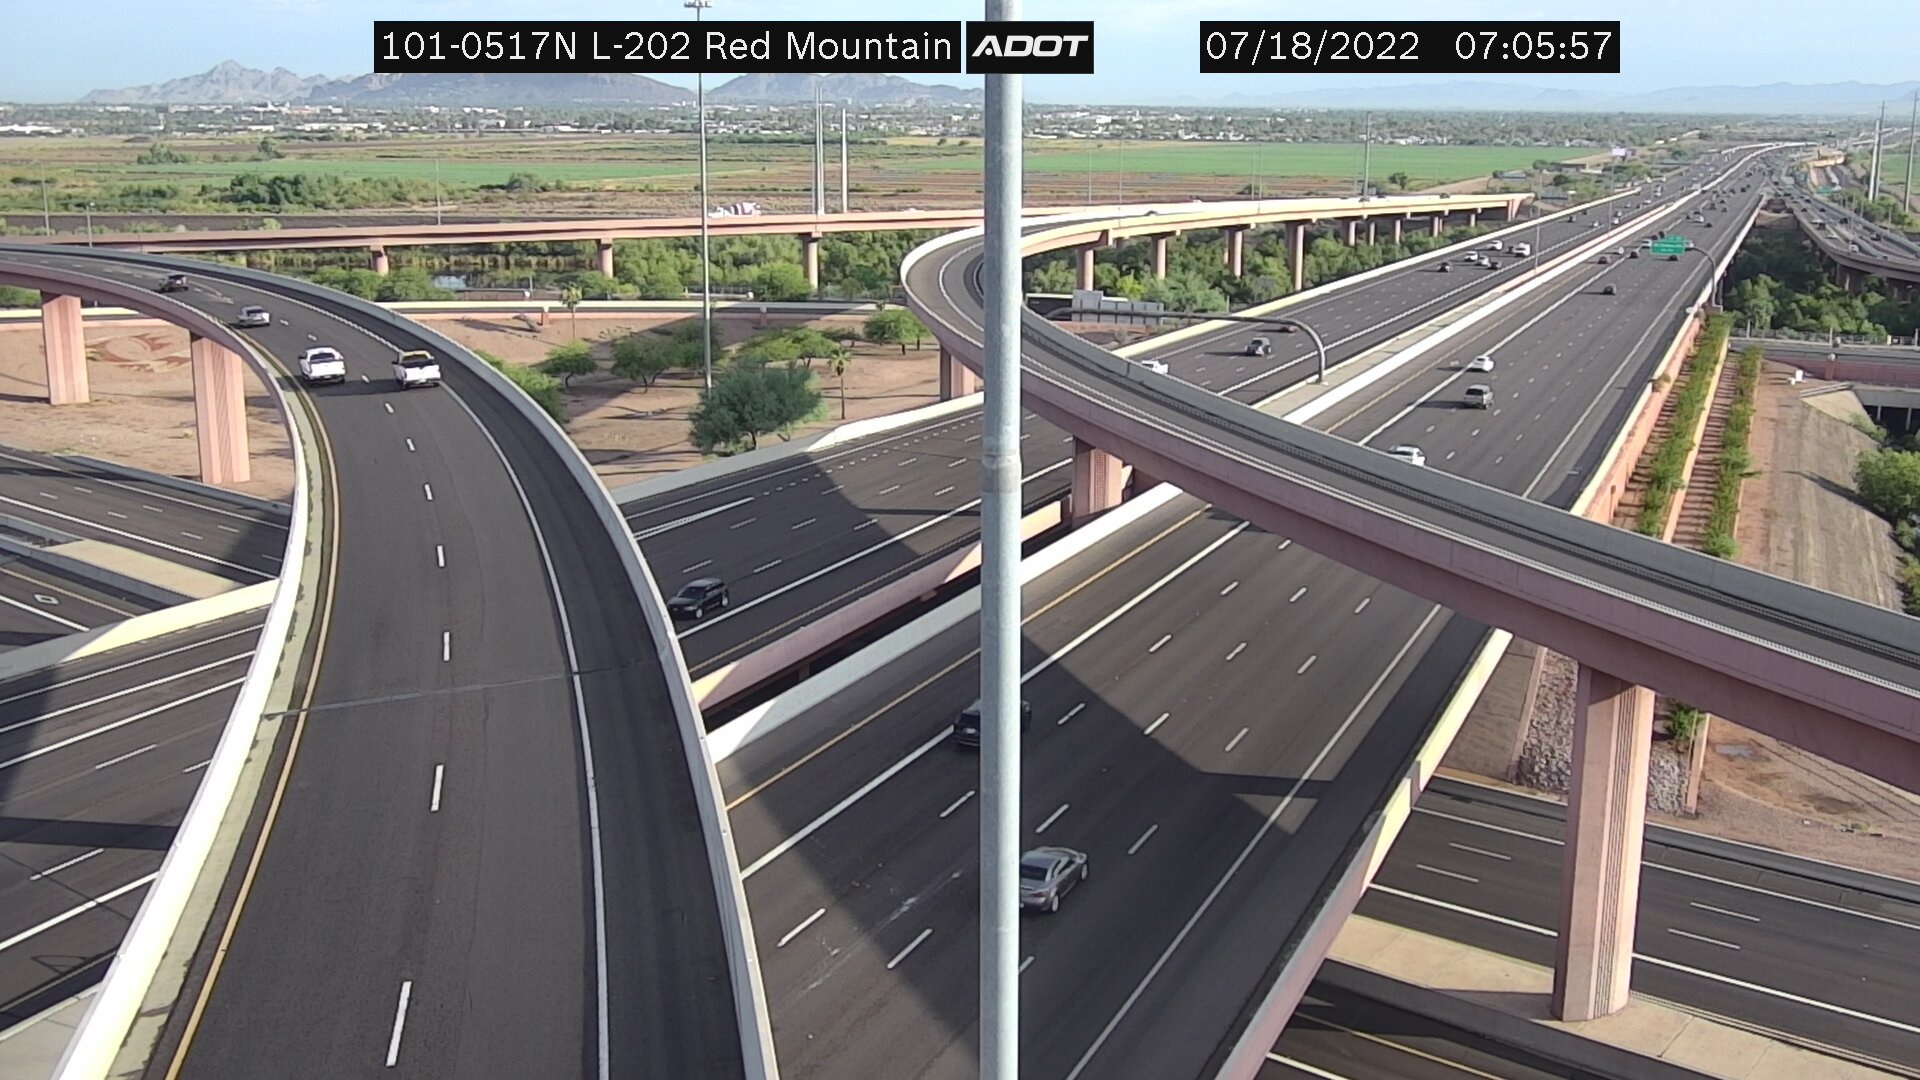 click to enlarge - L101/L202 Red Mtn Fwy Interchange, Mesa Arizona